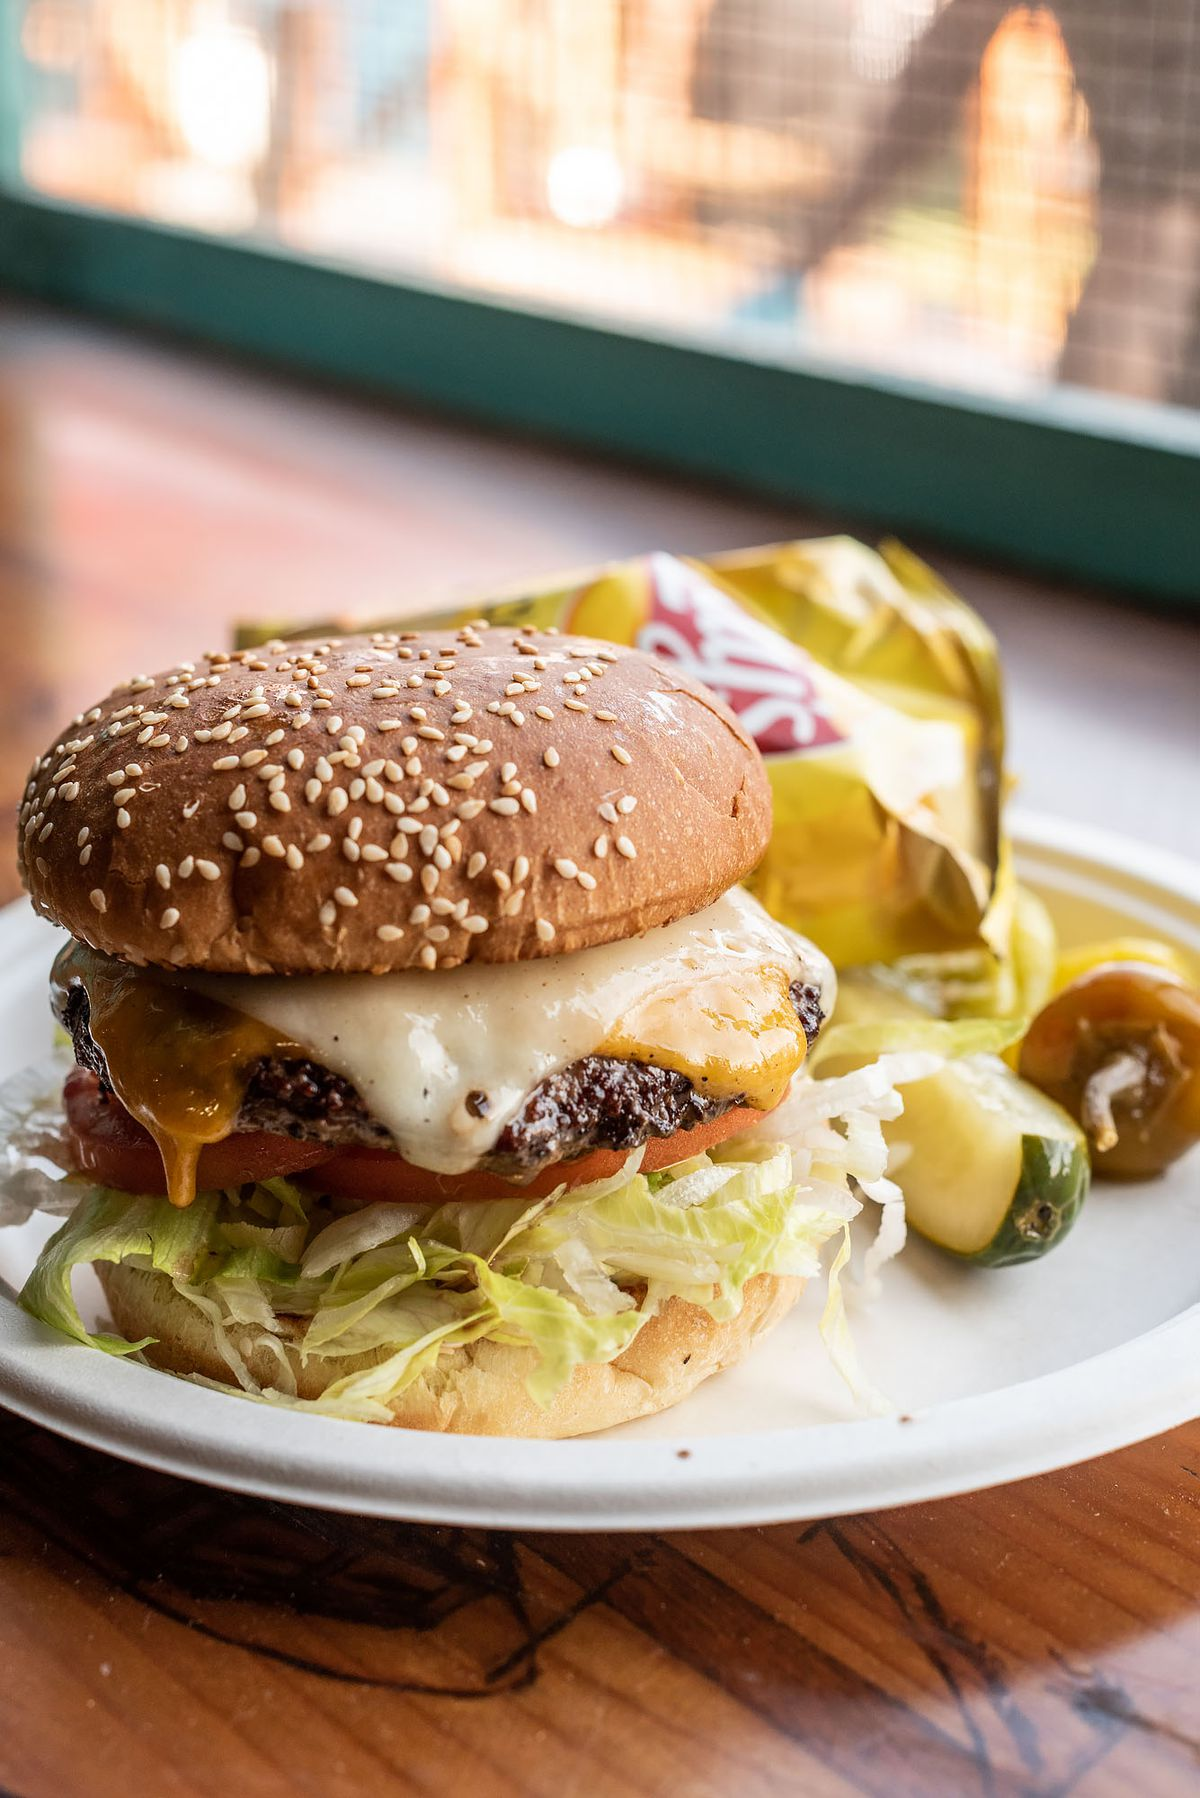 A vertical photo of a cheeseburger with two kinds of cheese on a seeded bun.